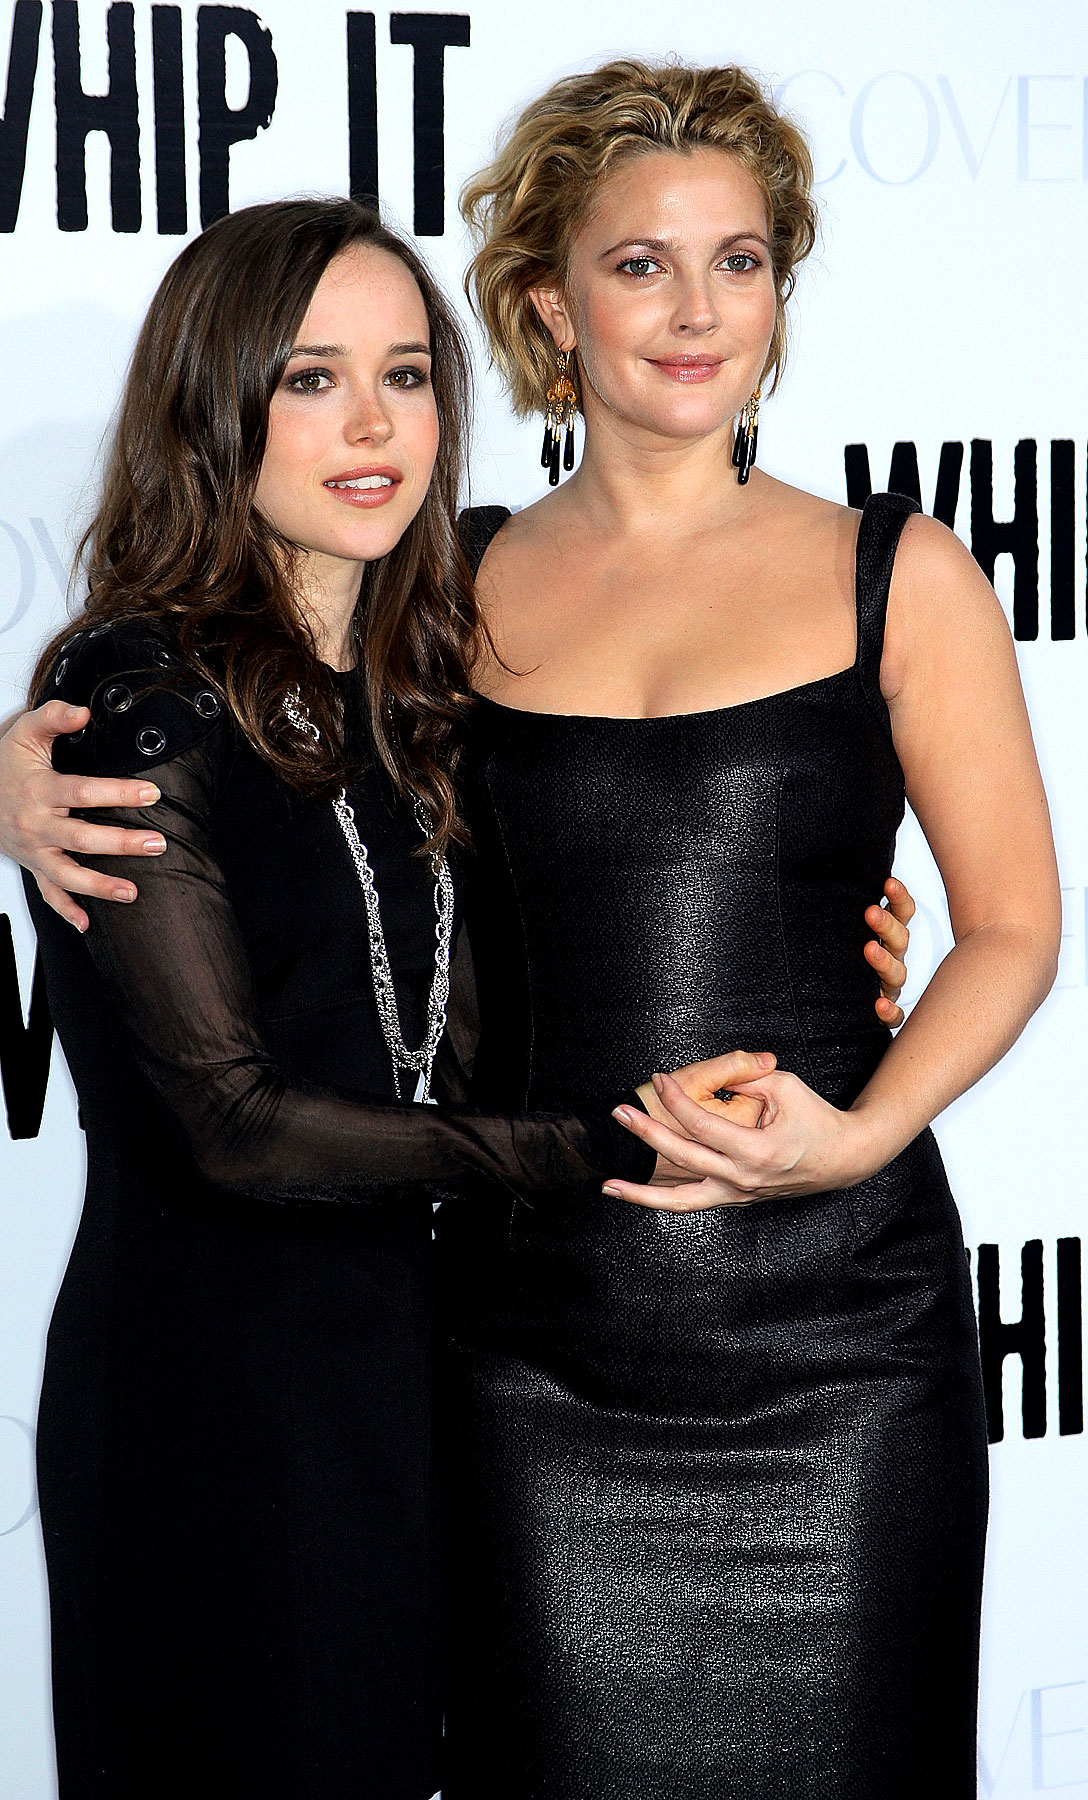 PHOTO GALLERY: Drew Barrymore and Ellen Page Whip It Good at L.A. Premiere